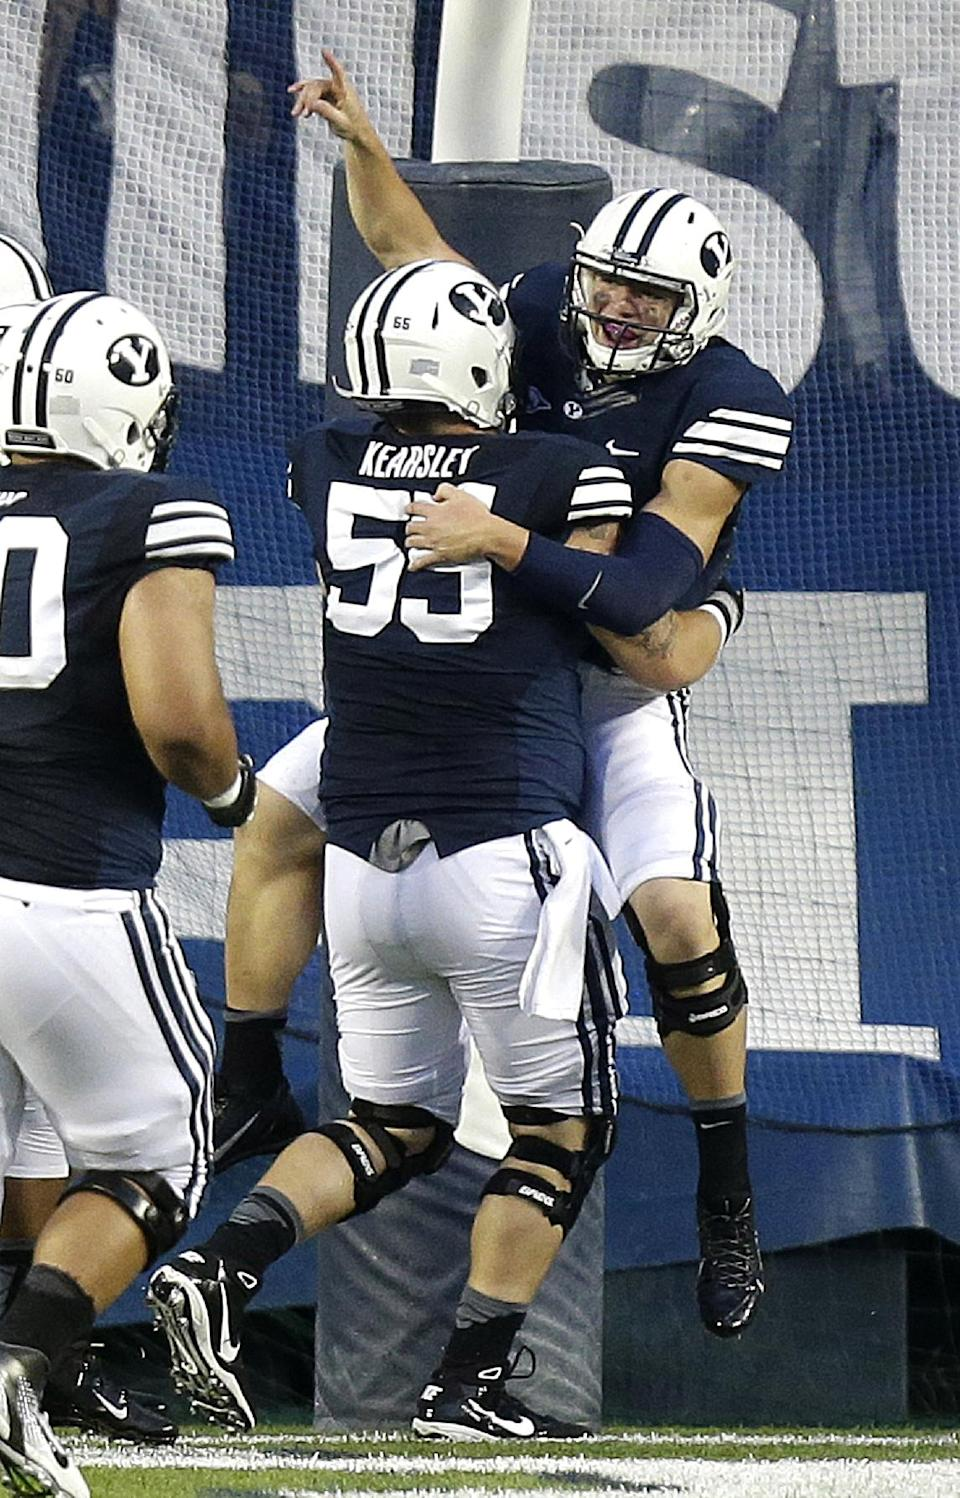 Brigham Young quarterback Taysom Hill (4)celebrates with teammate Brayden Kearsley (55) in the first quarter during an NCAA college football game against Texas, Saturday, Sept. 7, 2013, in Provo, Utah. (AP Photo/Rick Bowmer)